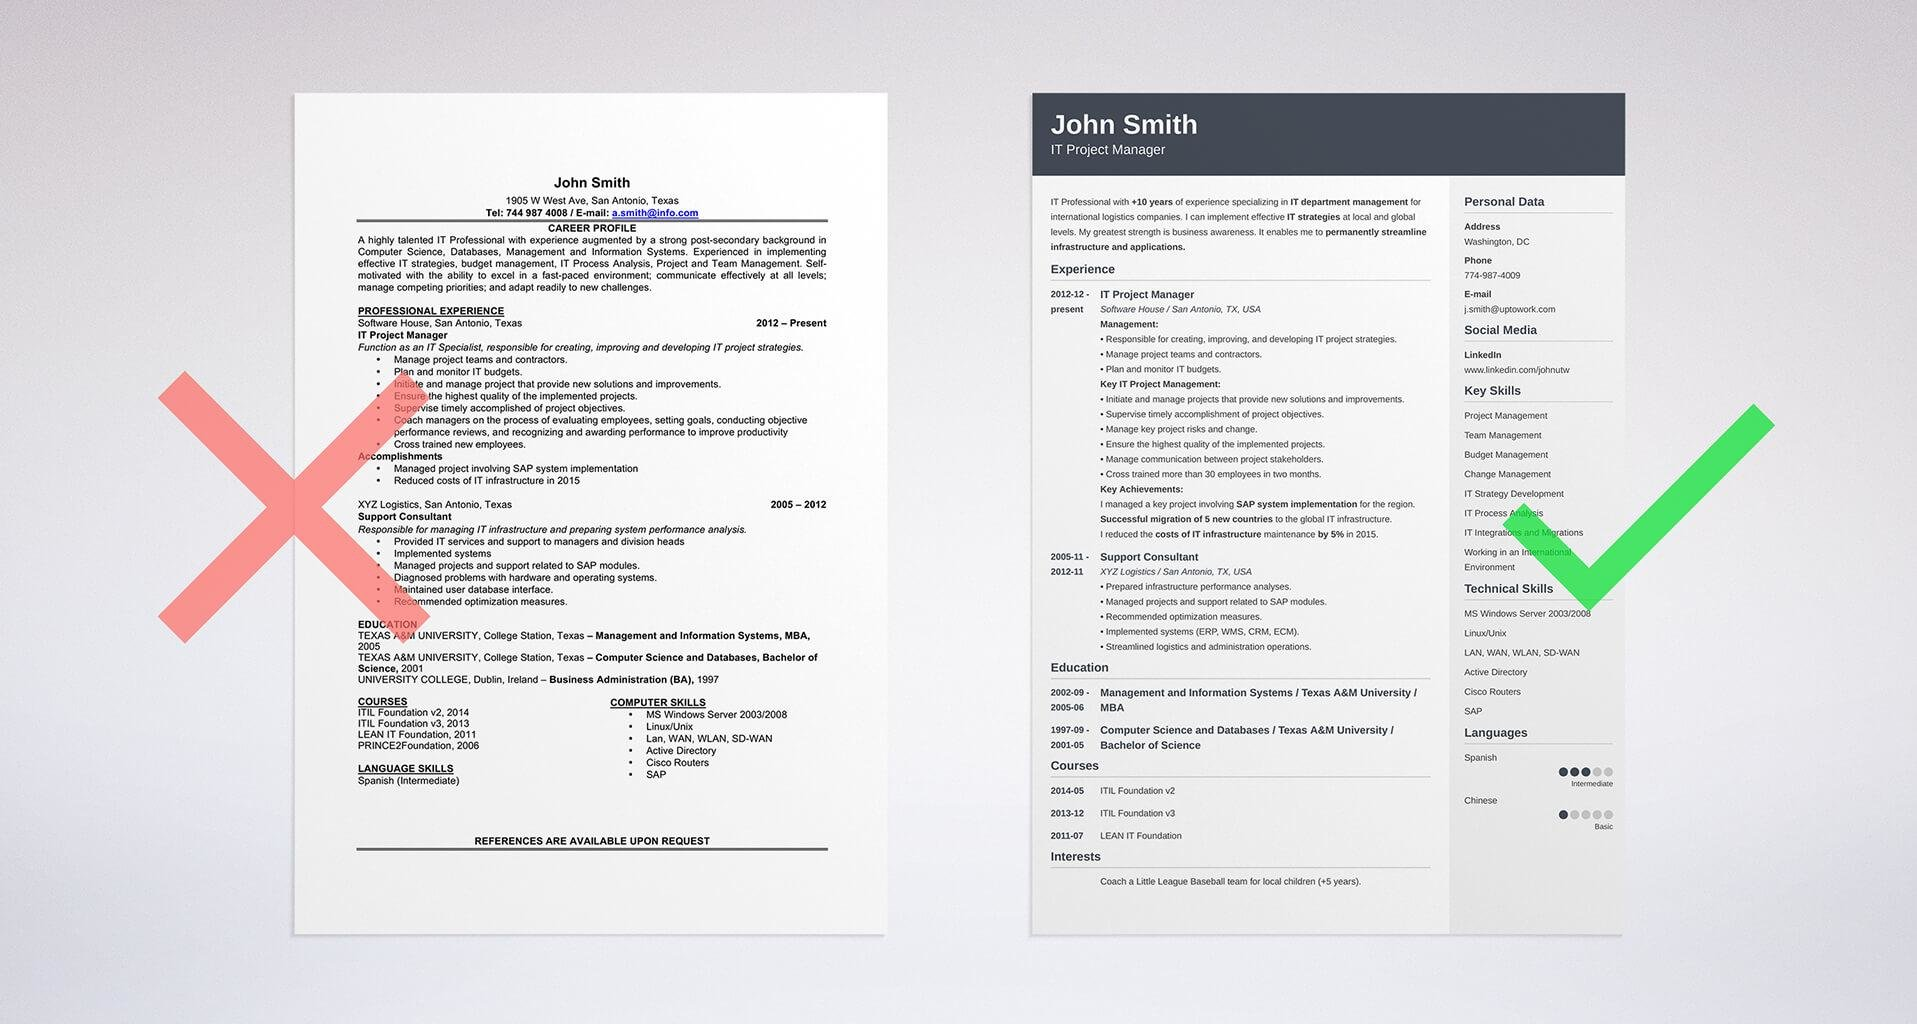 best resume format professional samples most effective example of formats loss prevention Resume Most Effective Resume Format 2020